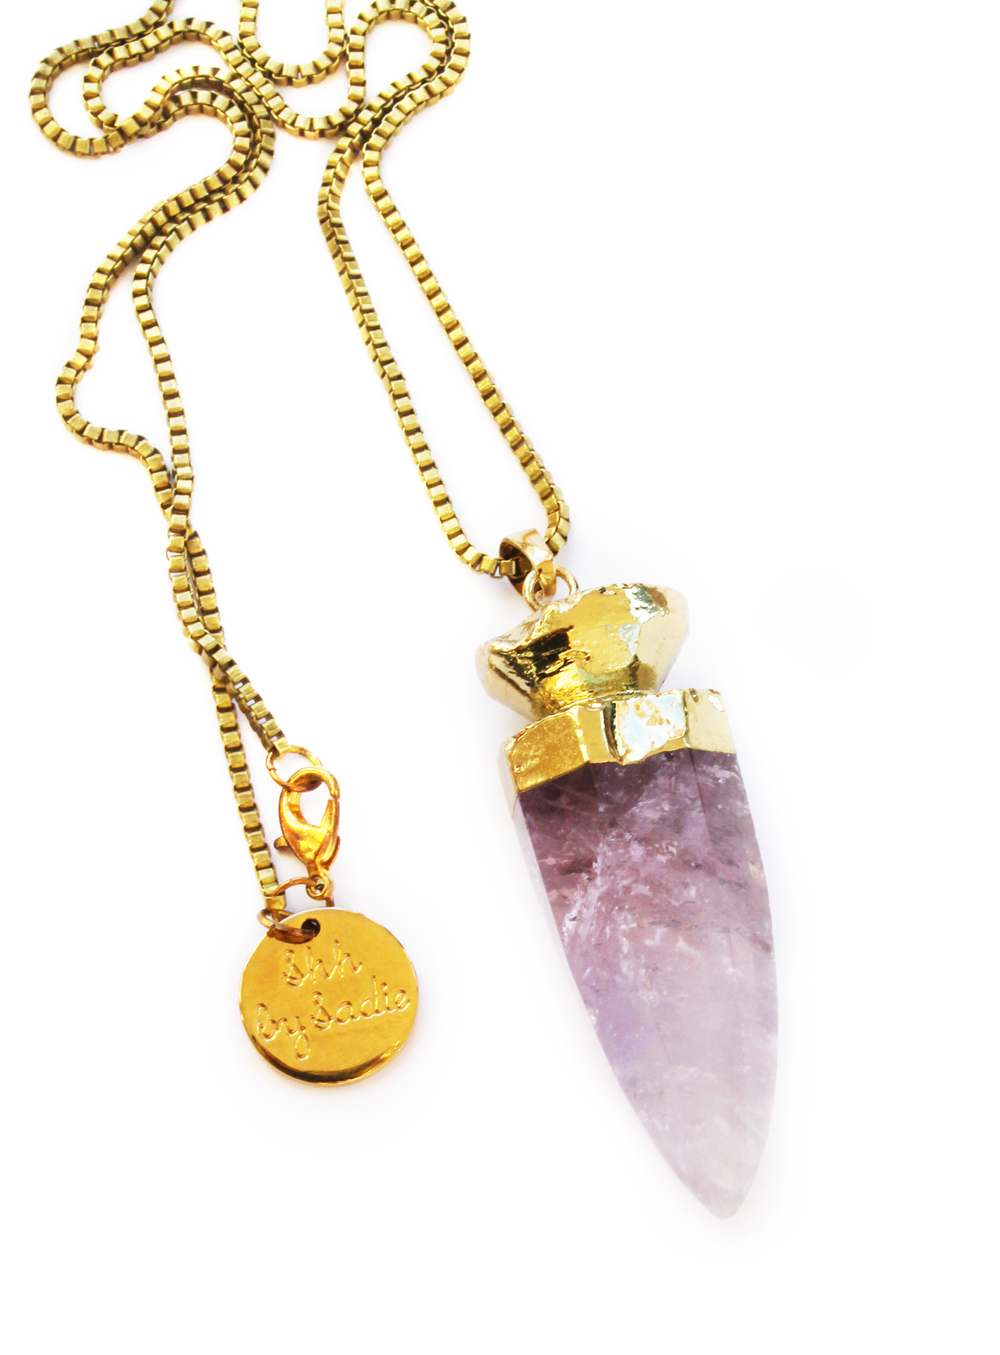 Chunky amethyst pendant with gold box chain statement necklace by NZ jewellery designer Shh by Sadie